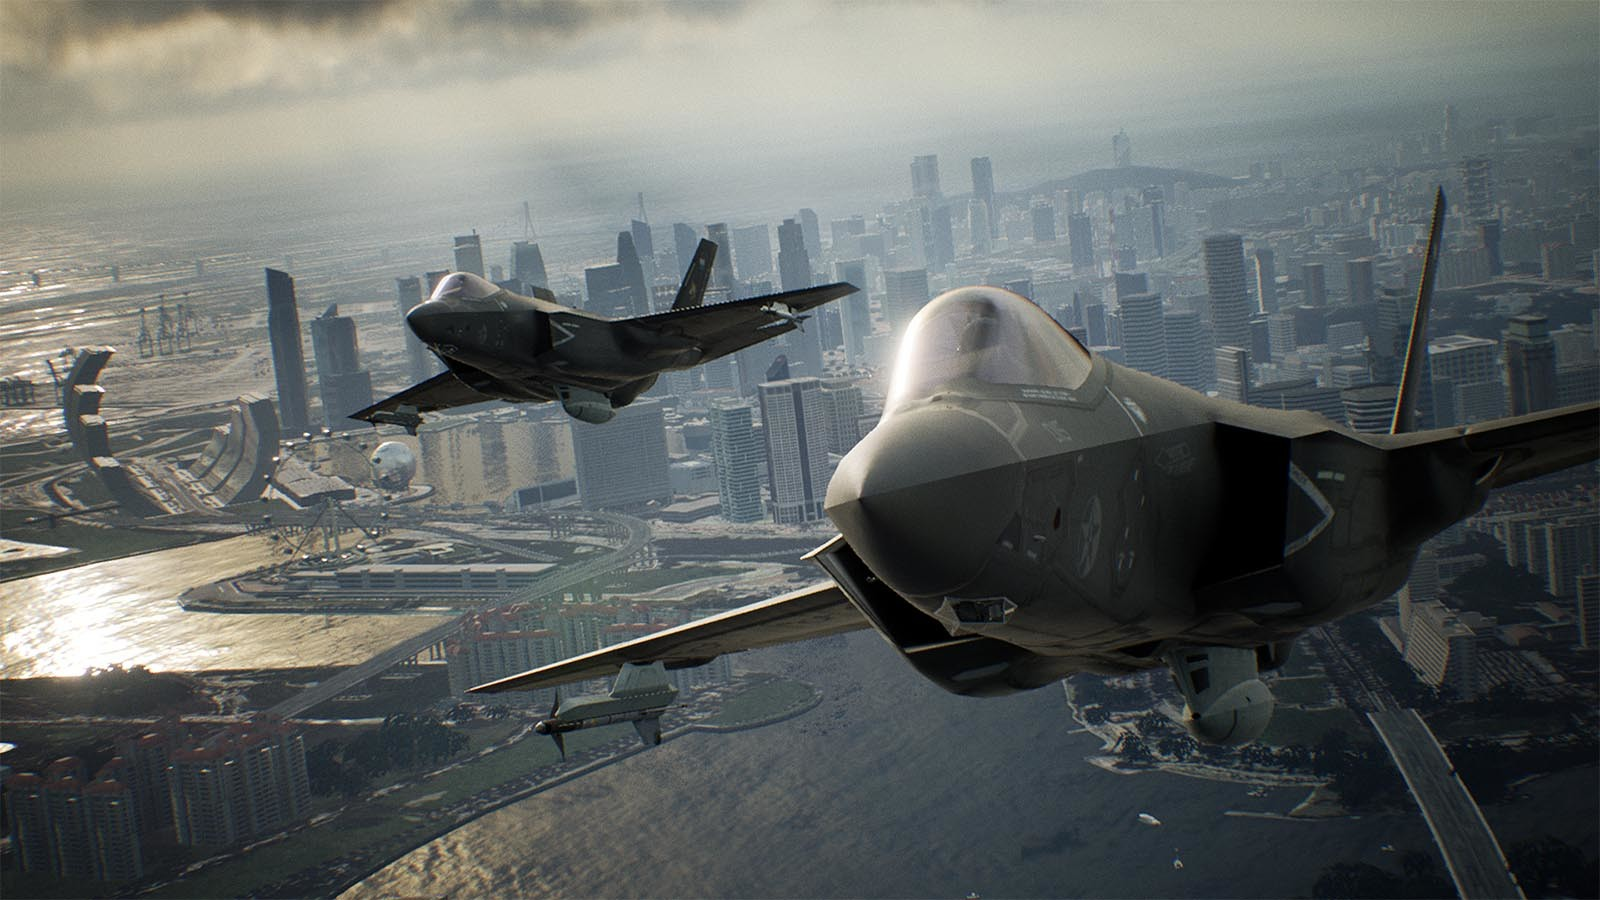 Ace Combat 7: Skies Unknown Season Pass [Steam CD Key] for PC - Buy now